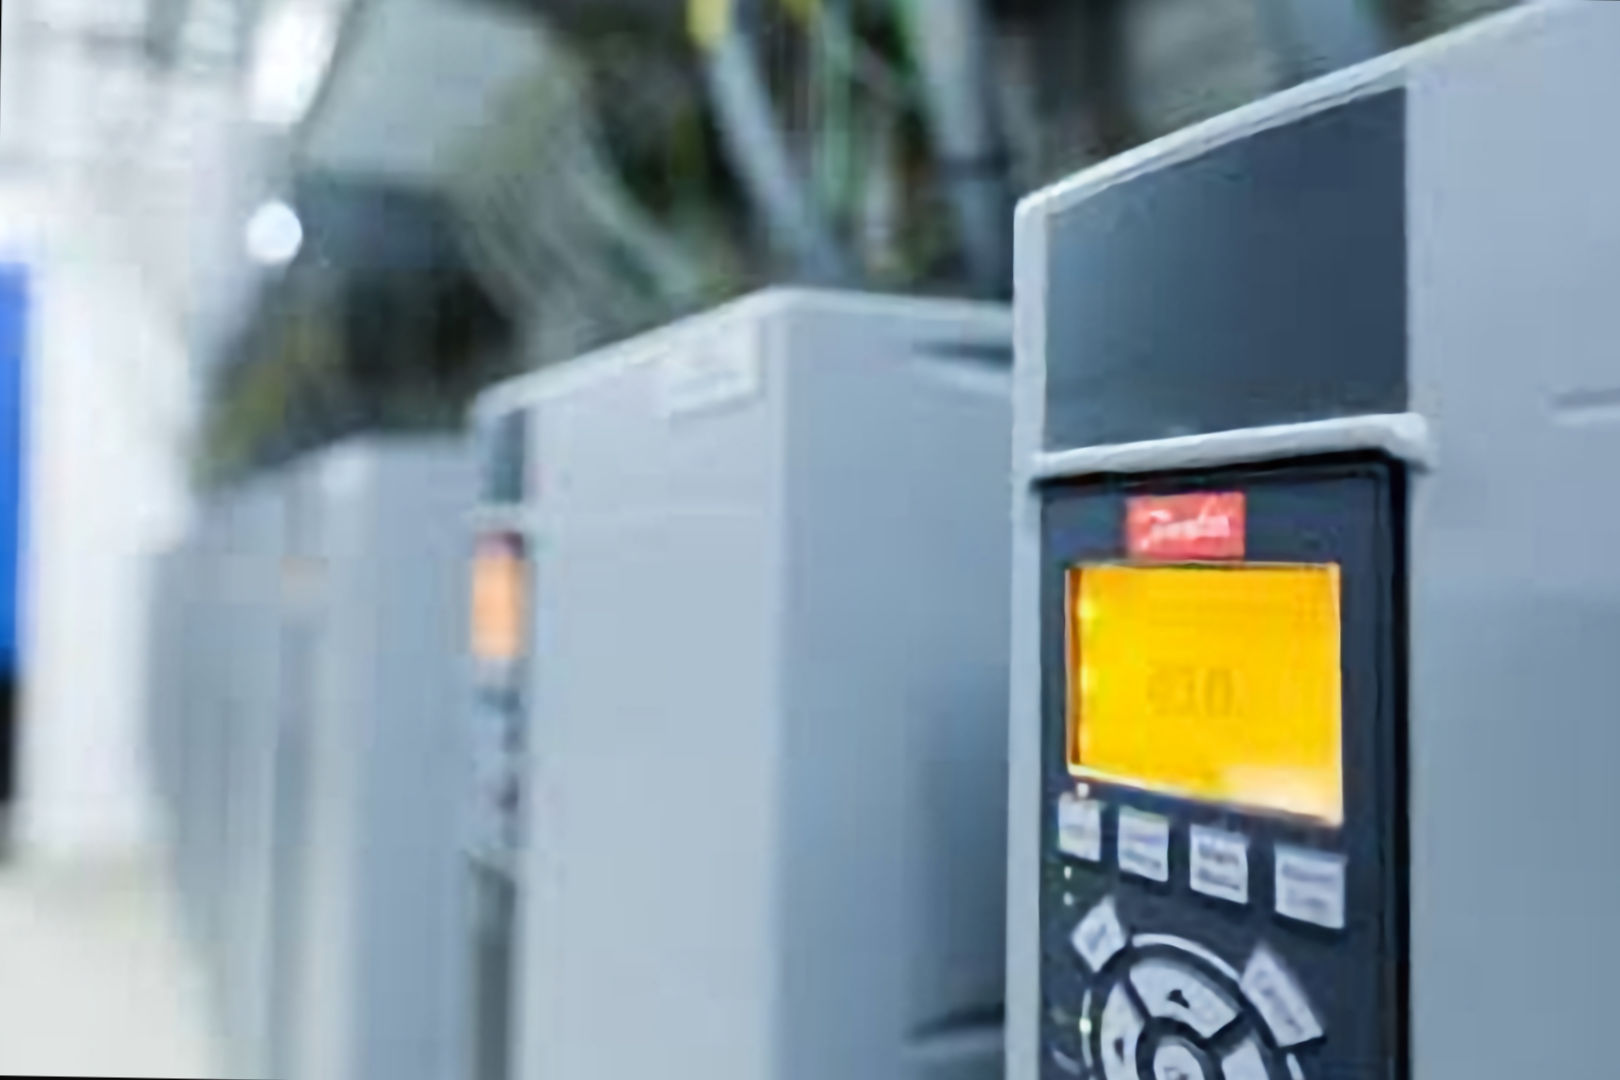 danfoss variable speed drives installed in plant room